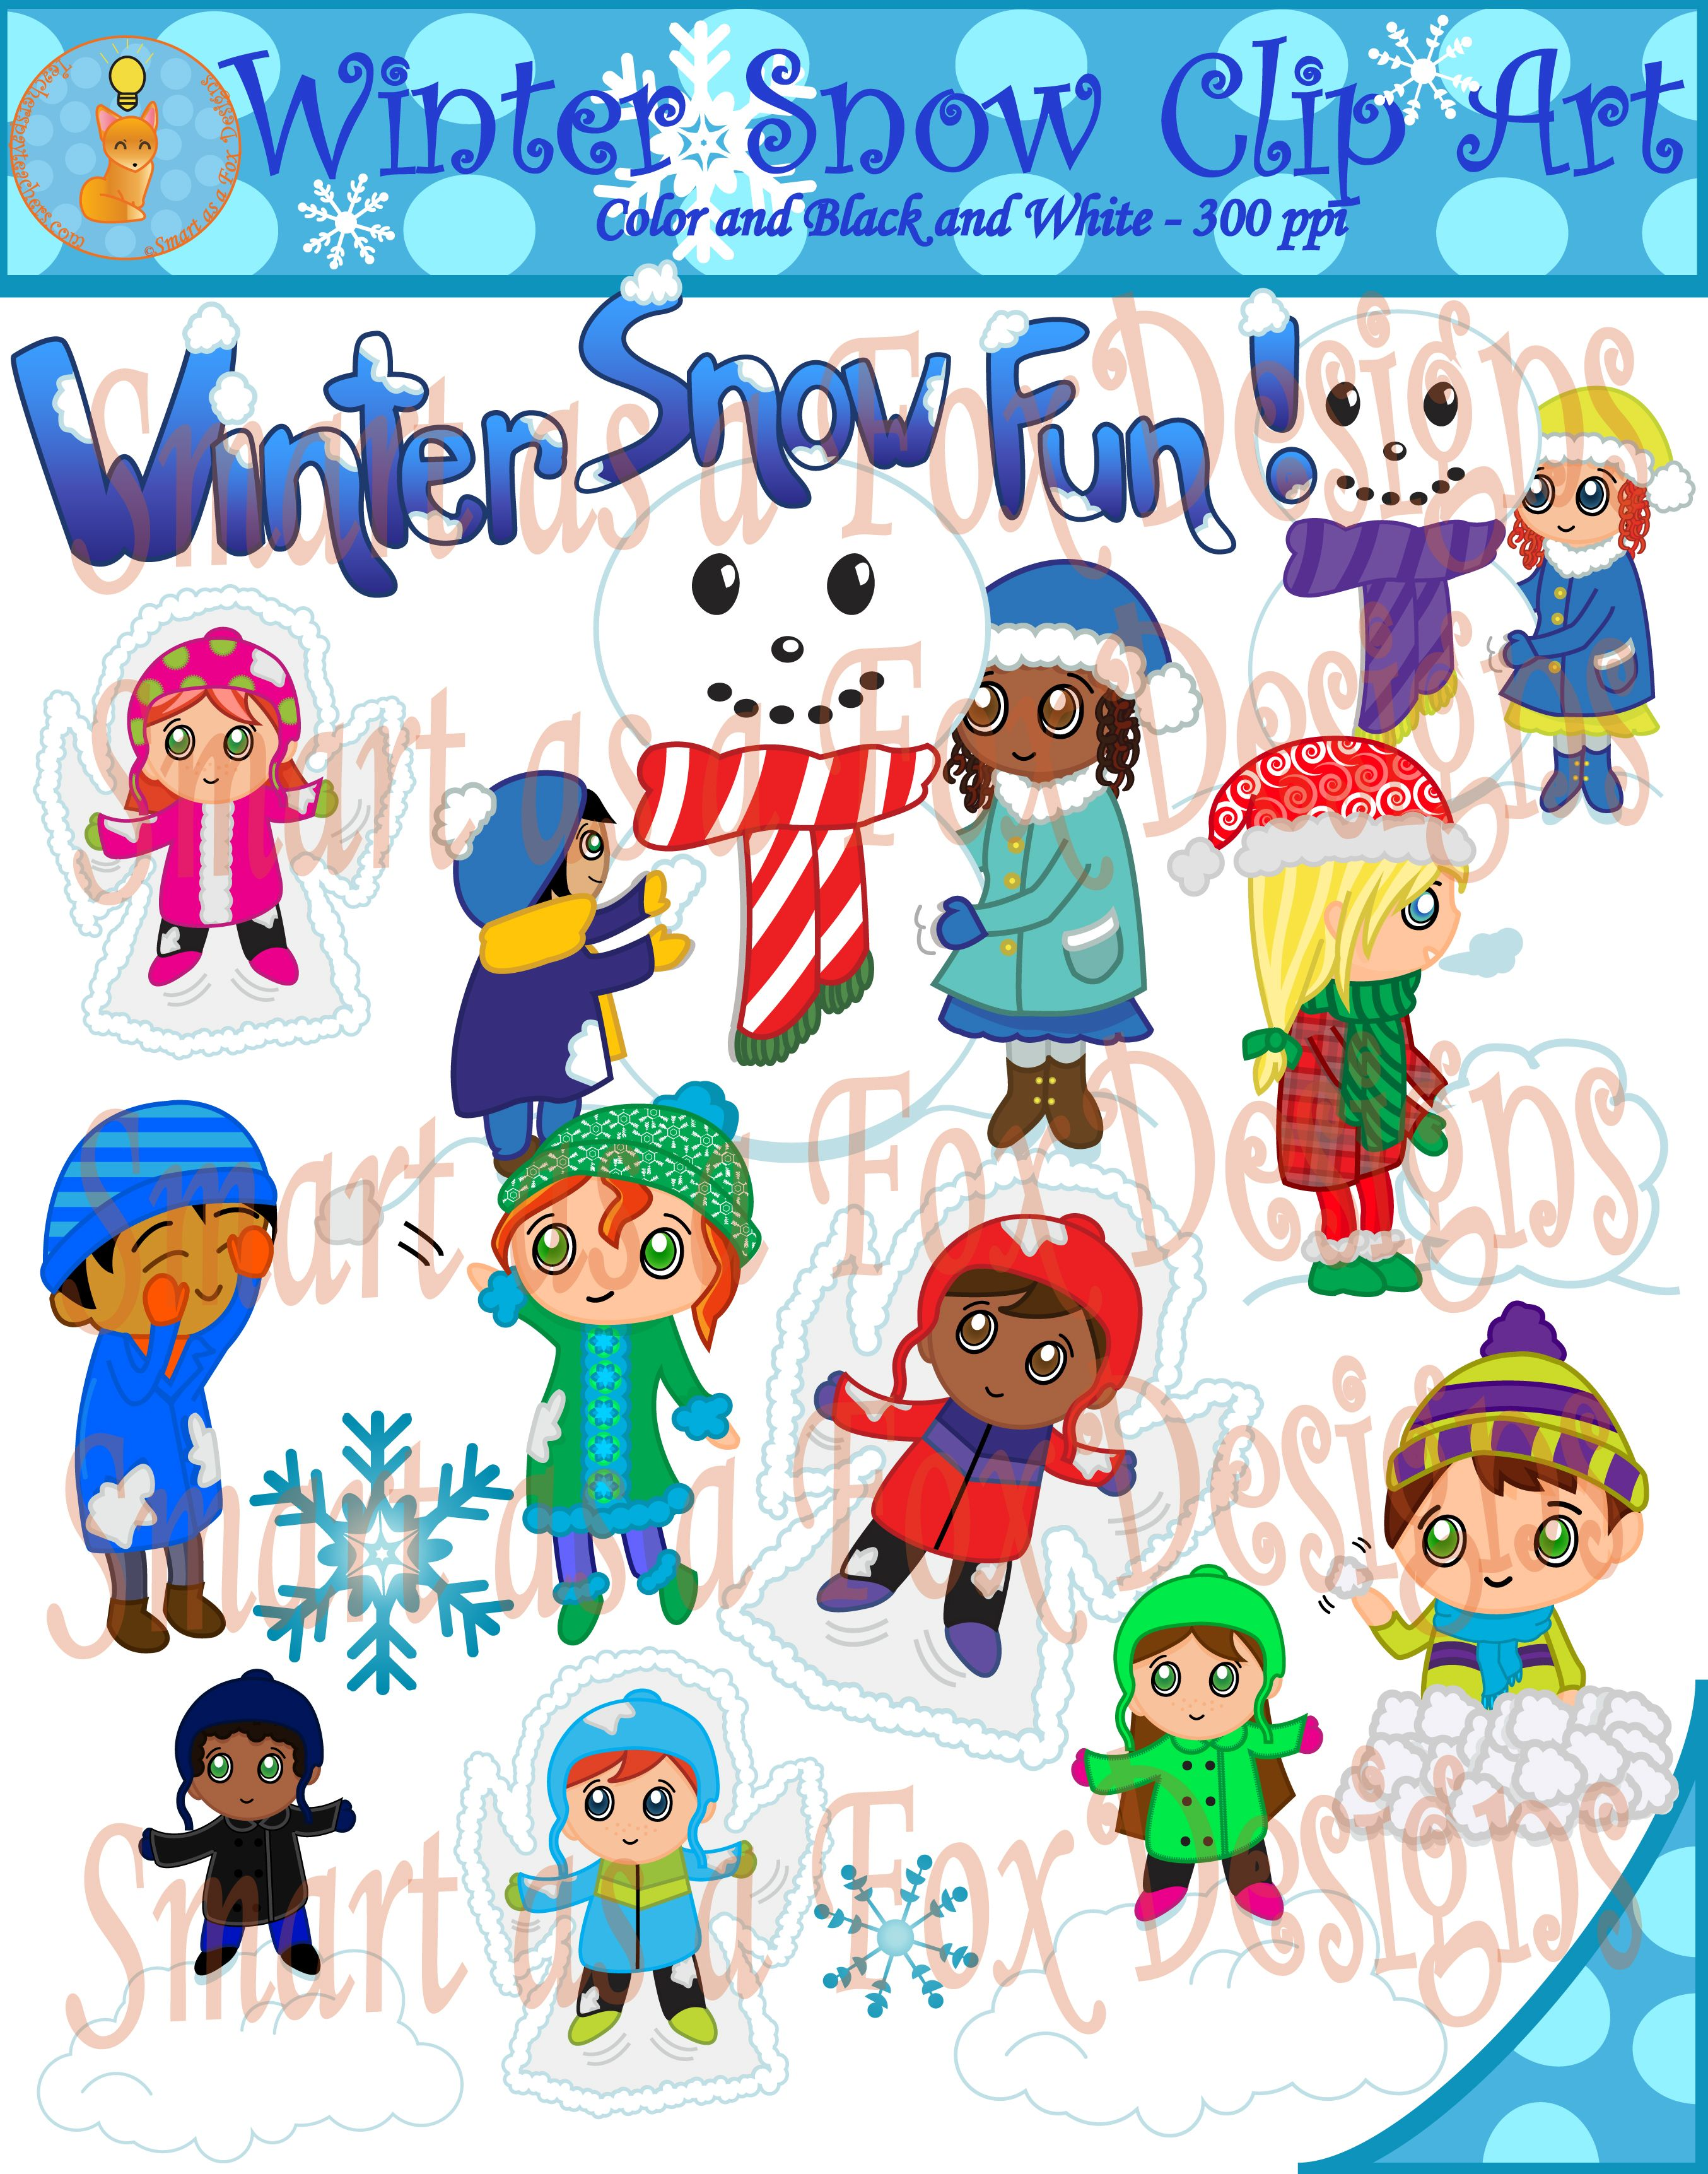 medium resolution of  winter snow fun clipart by smart as a fox designs this collection contains 41 clip art pieces 25 vividly colored images and 16 black and white